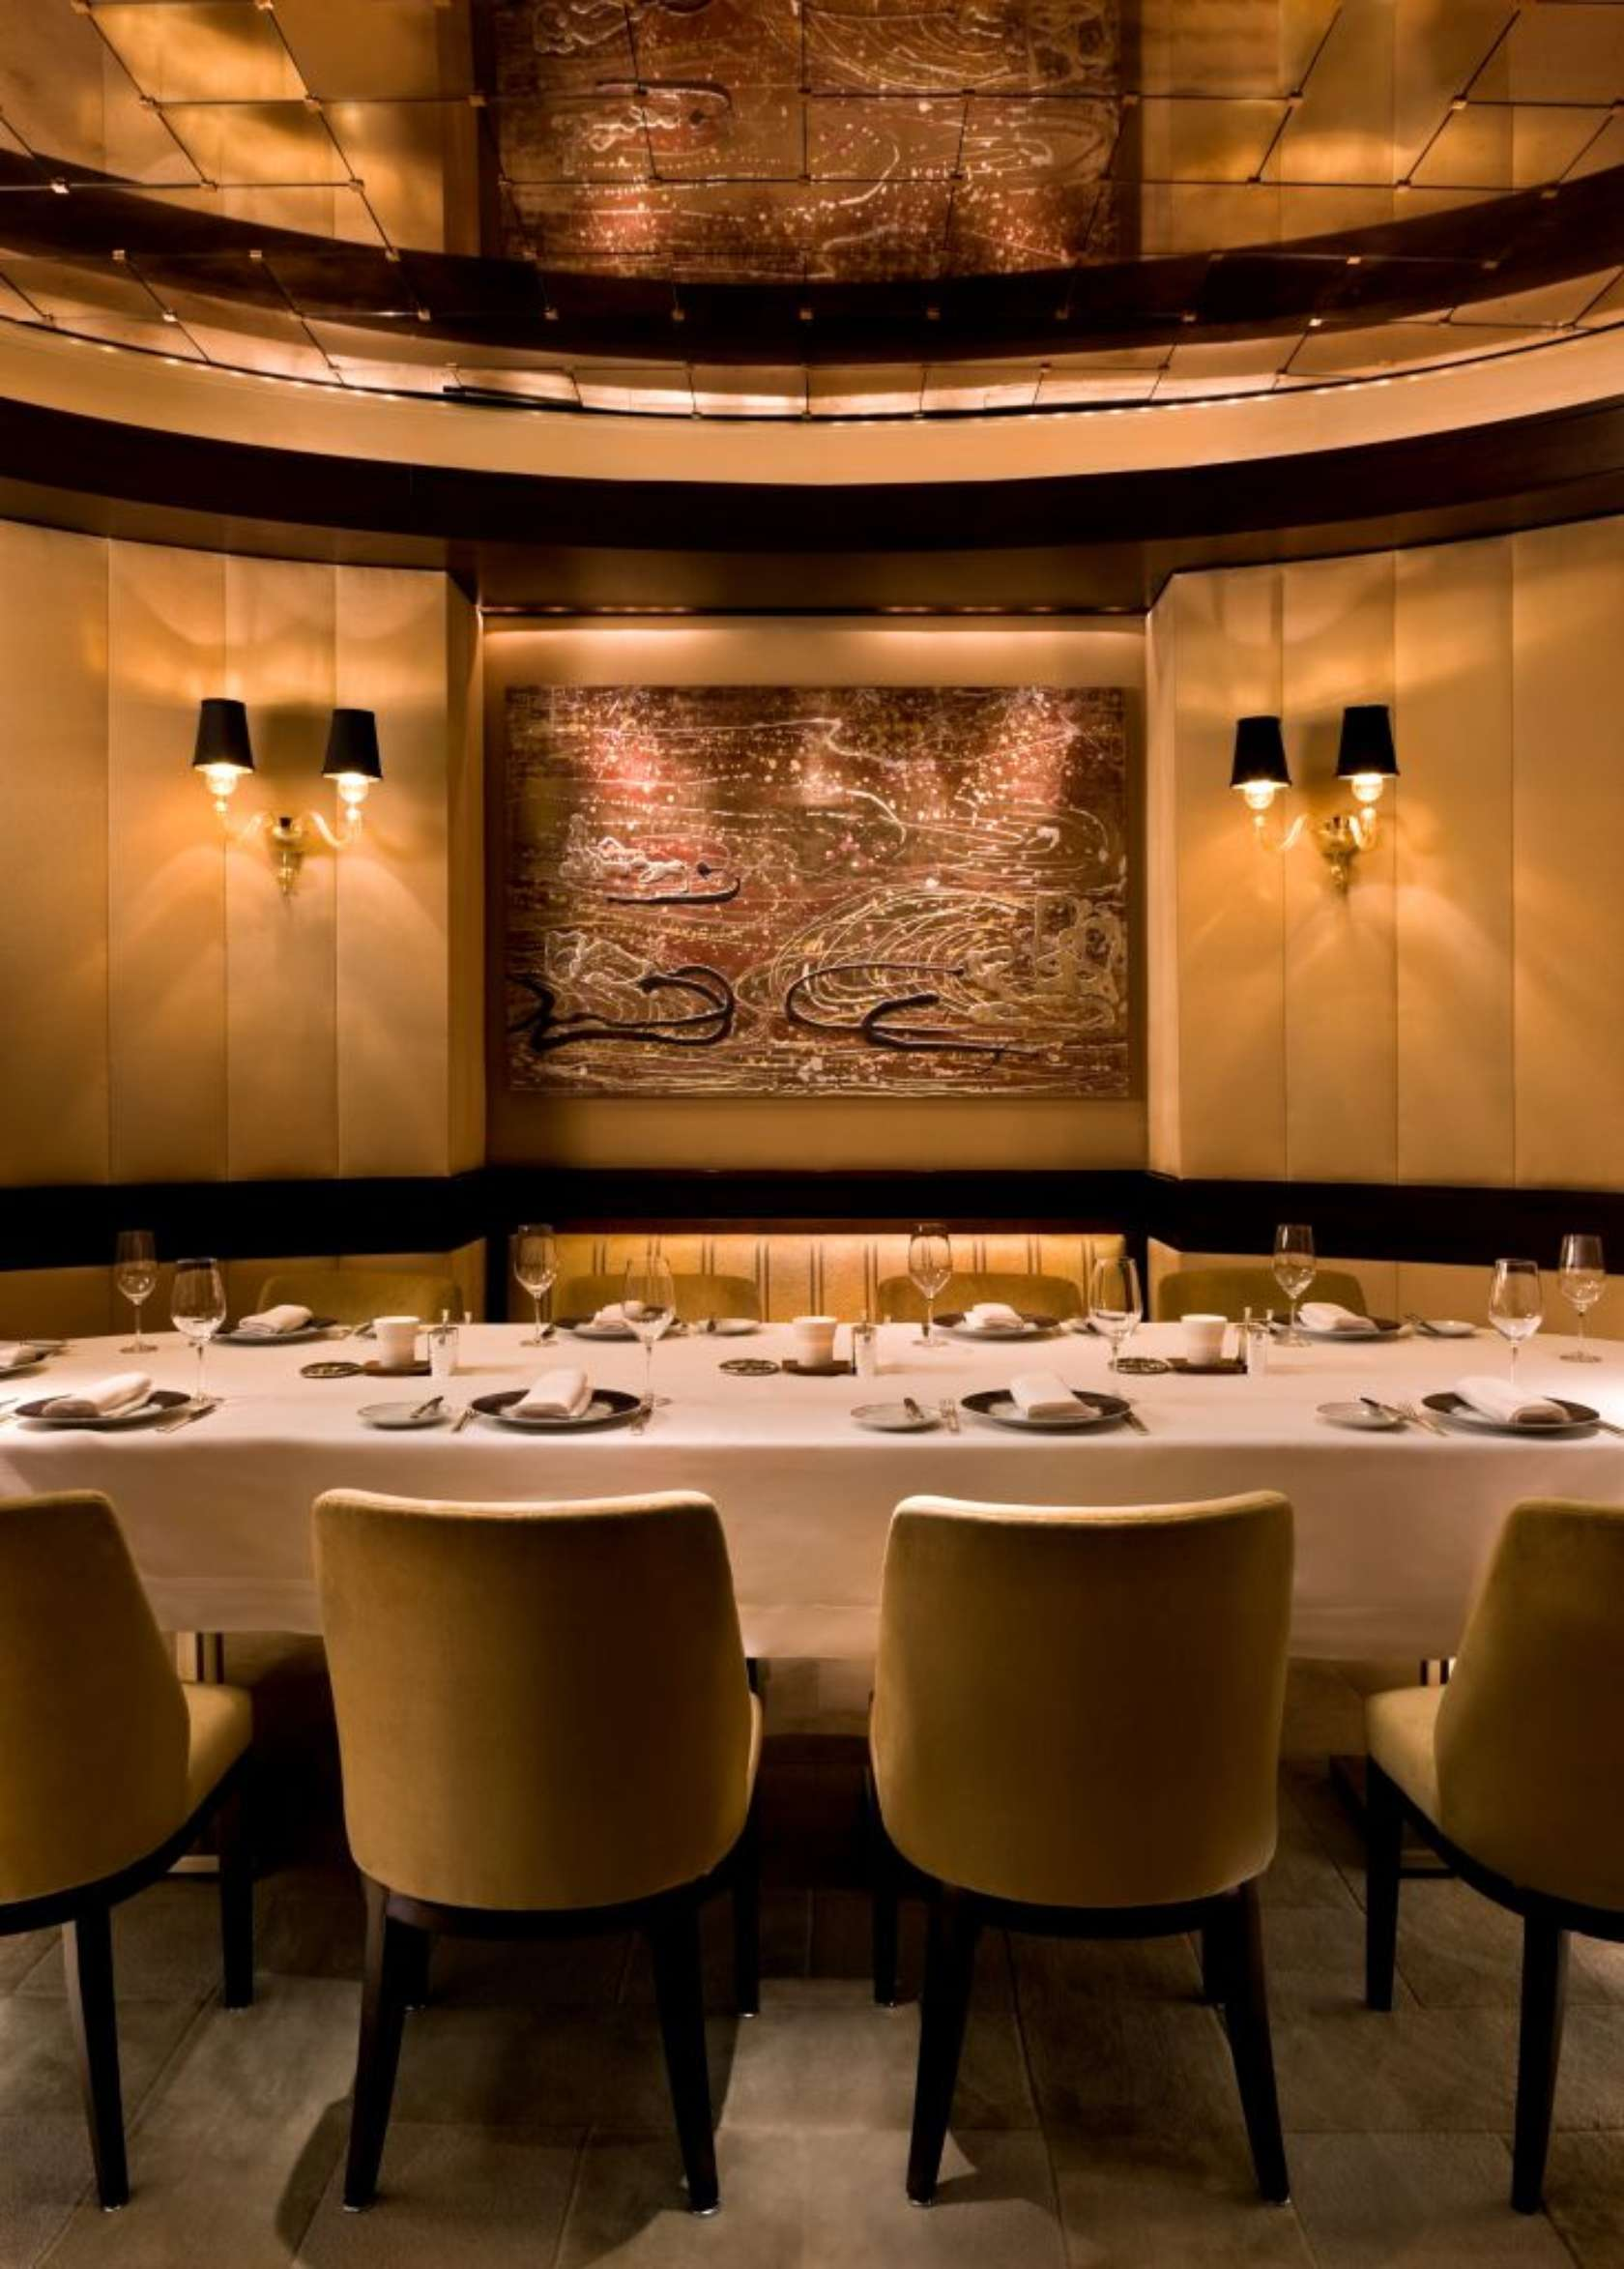 Adour alain ducasse at the st regis architizer for Dining room 56 willoughby street